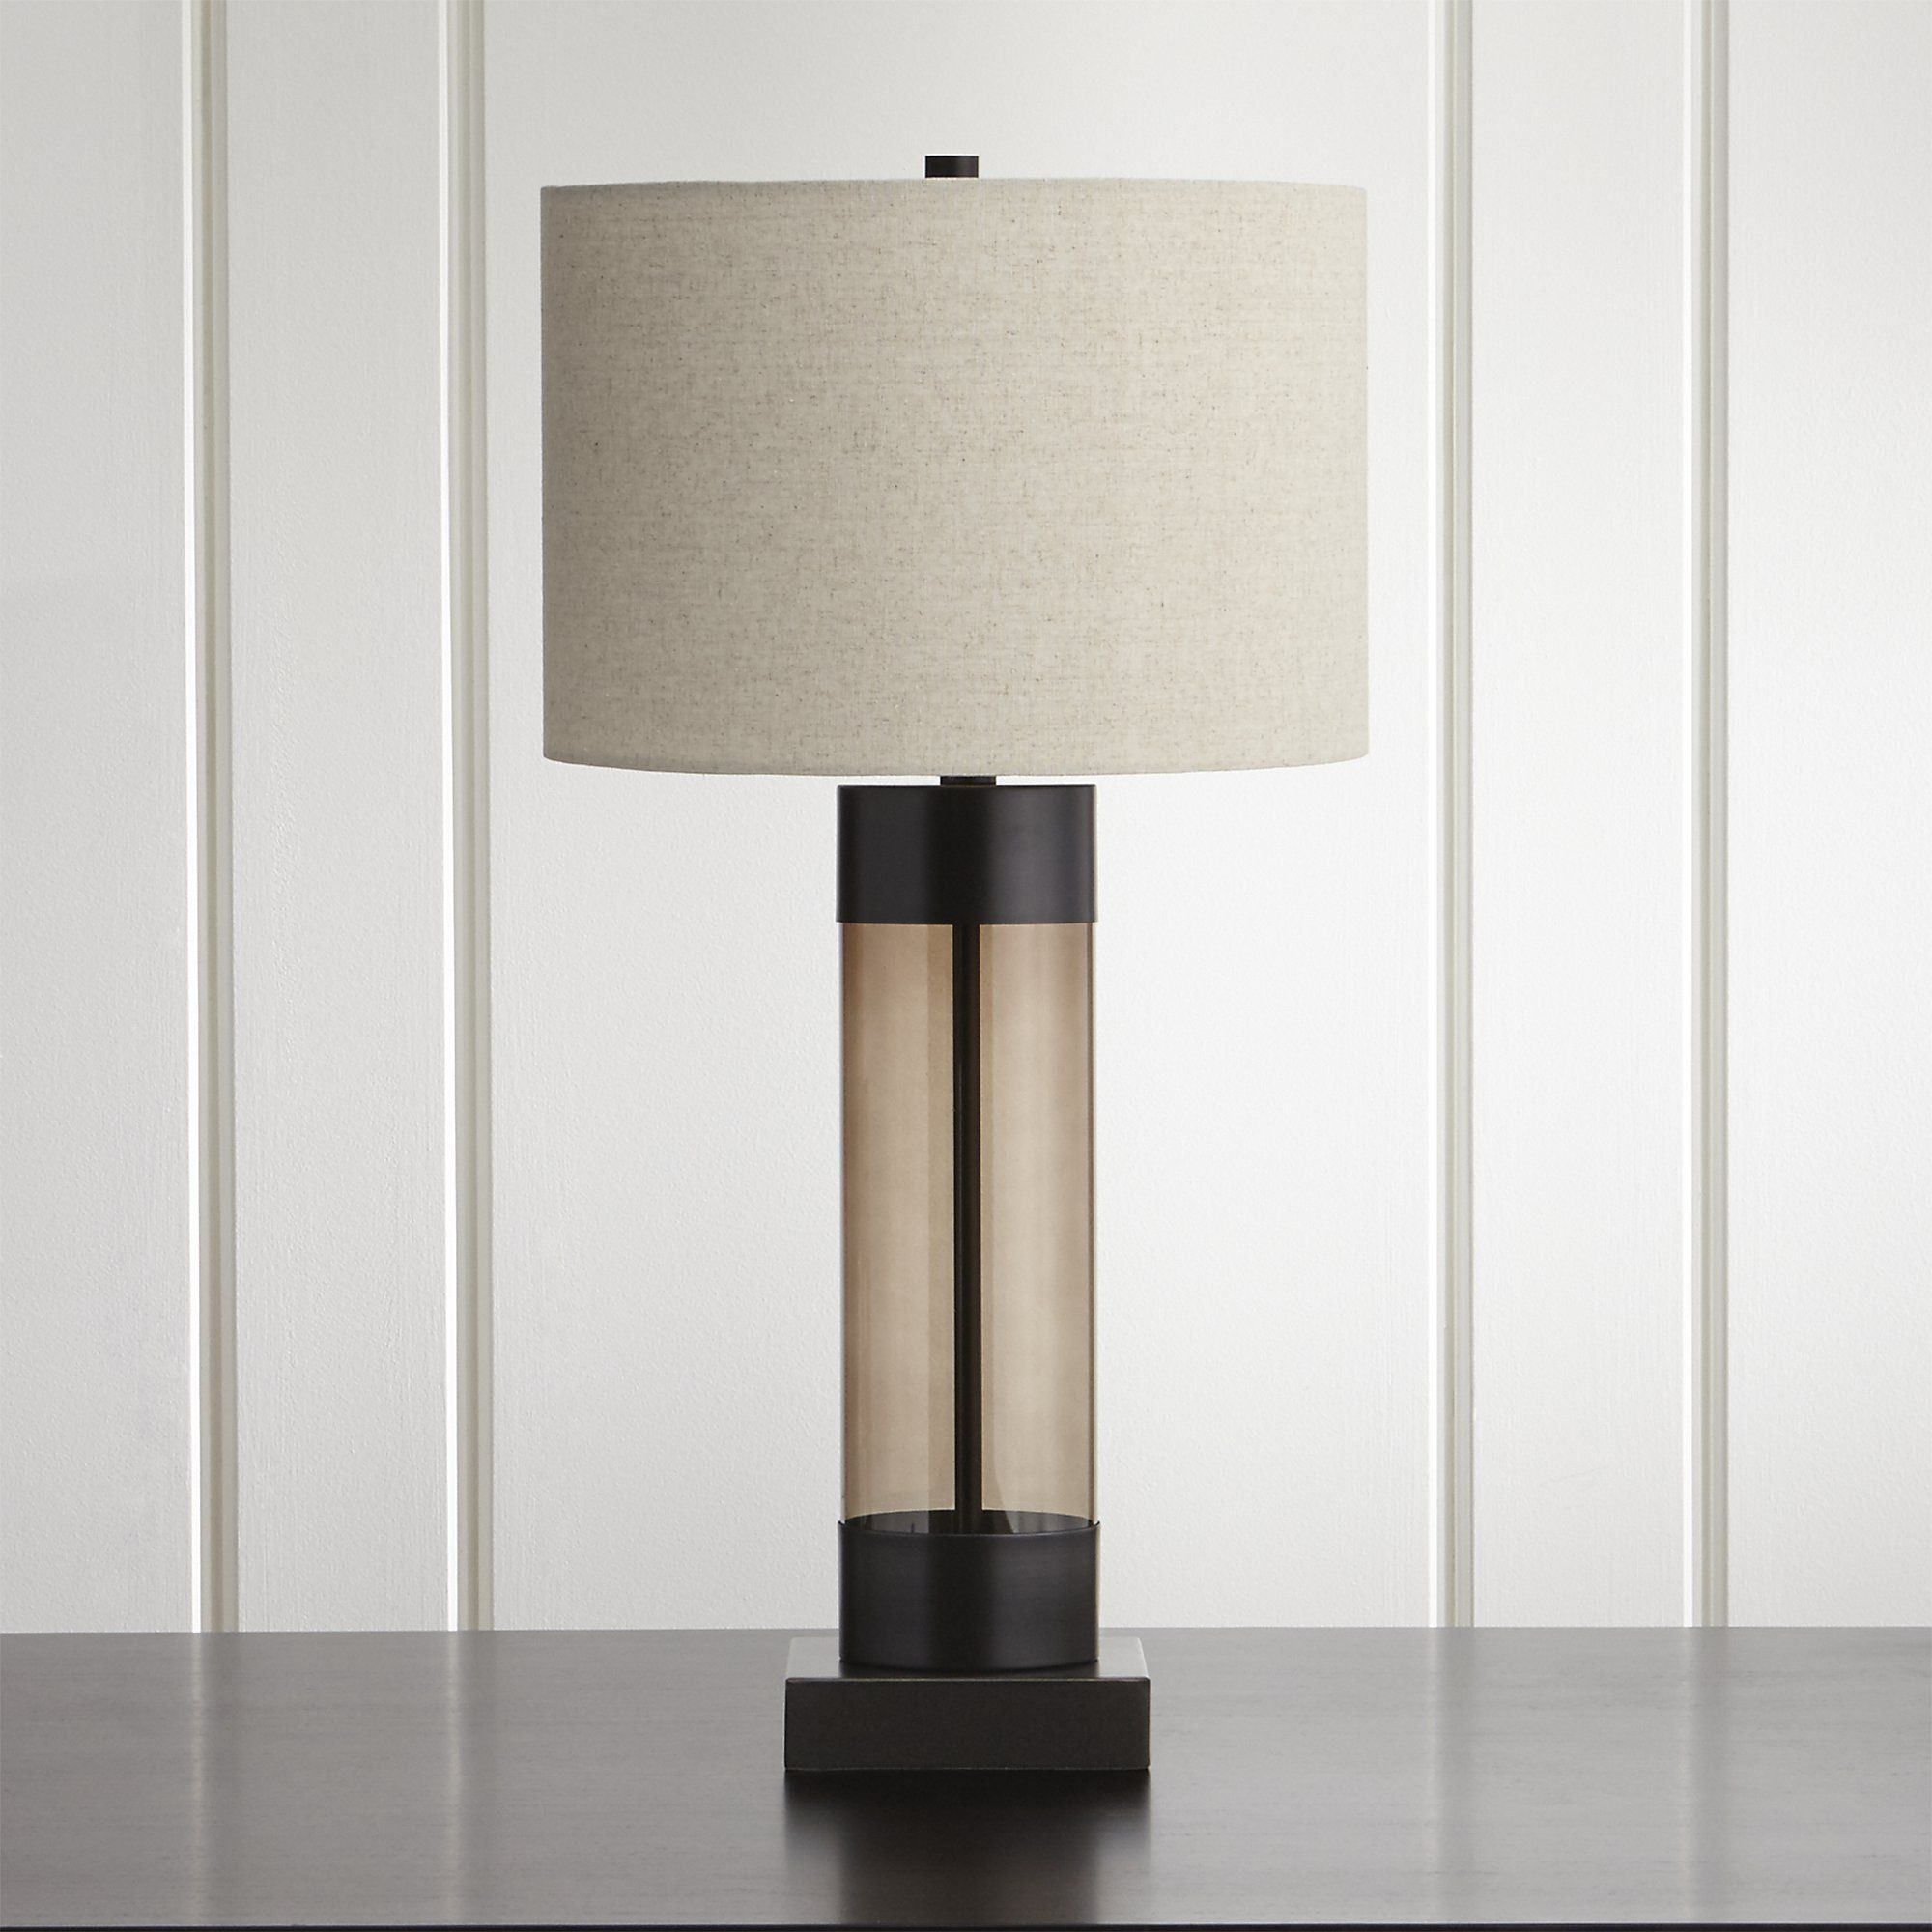 Avenue bronze table lamp with usb port crate and barrel crate avenue bronze table lamp with usb port crate and barrel geotapseo Gallery